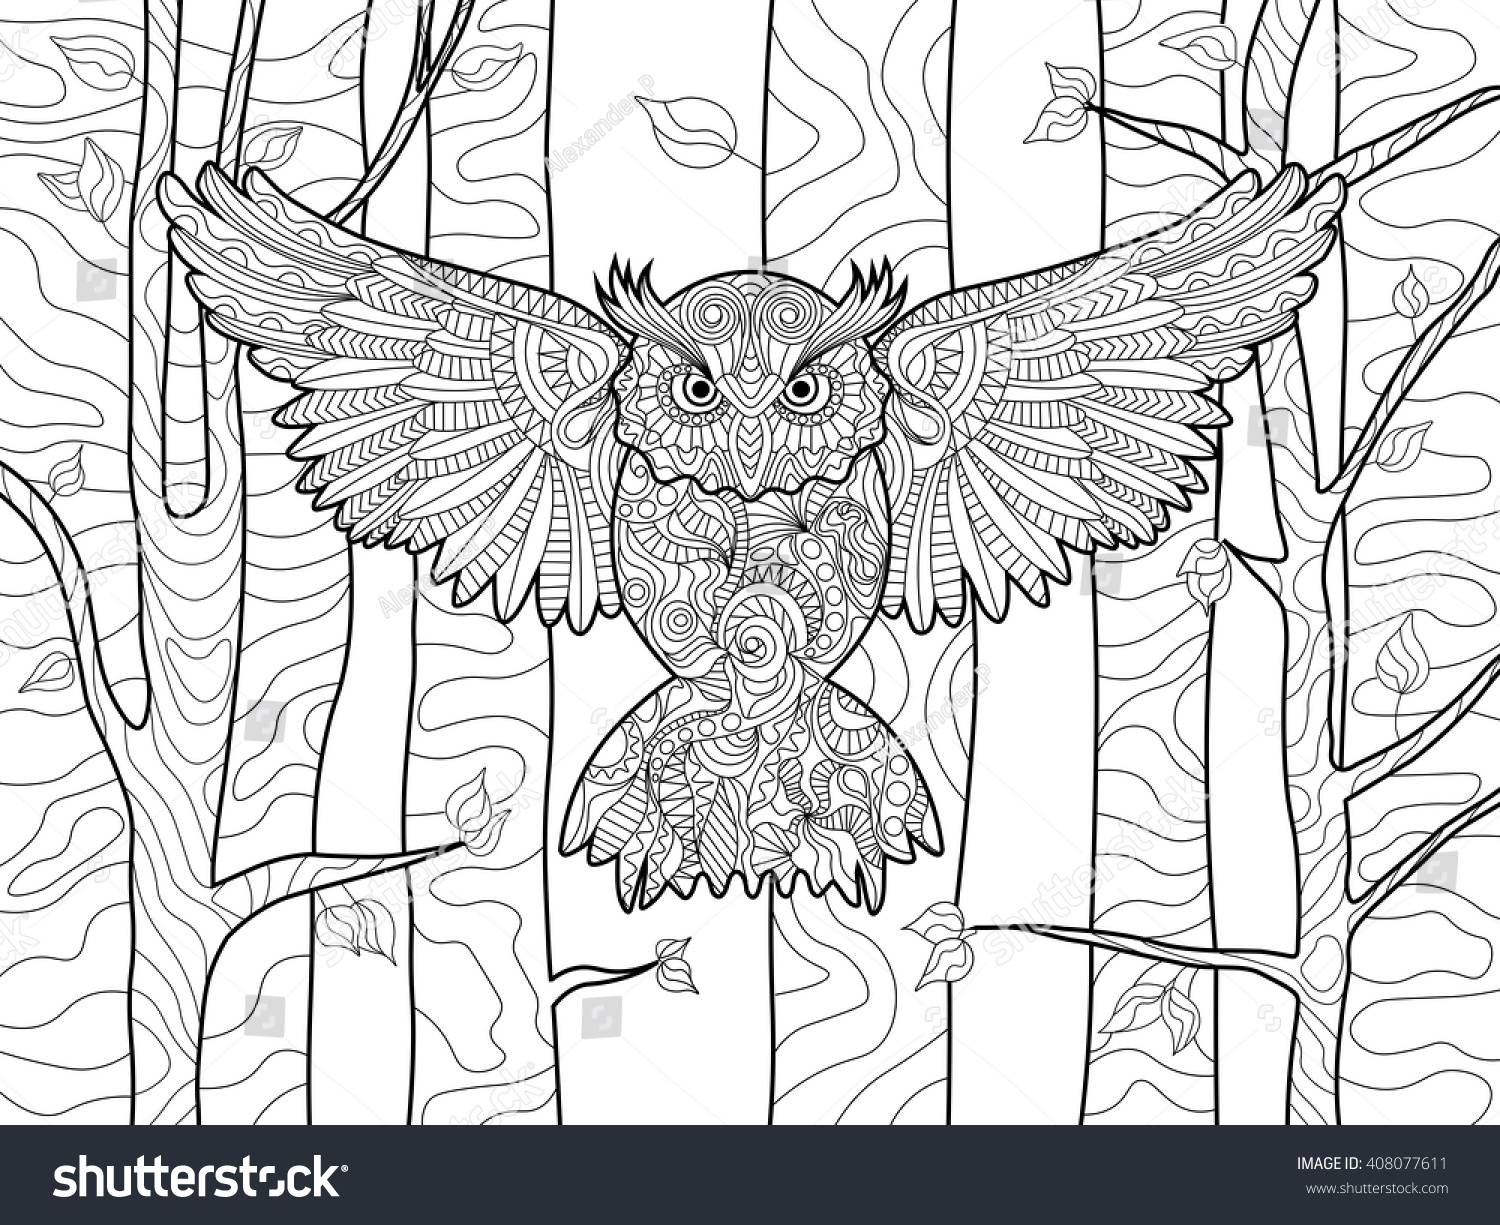 Owl In The Forest Bird Coloring Book For Adults Vector Illustration Anti Stress